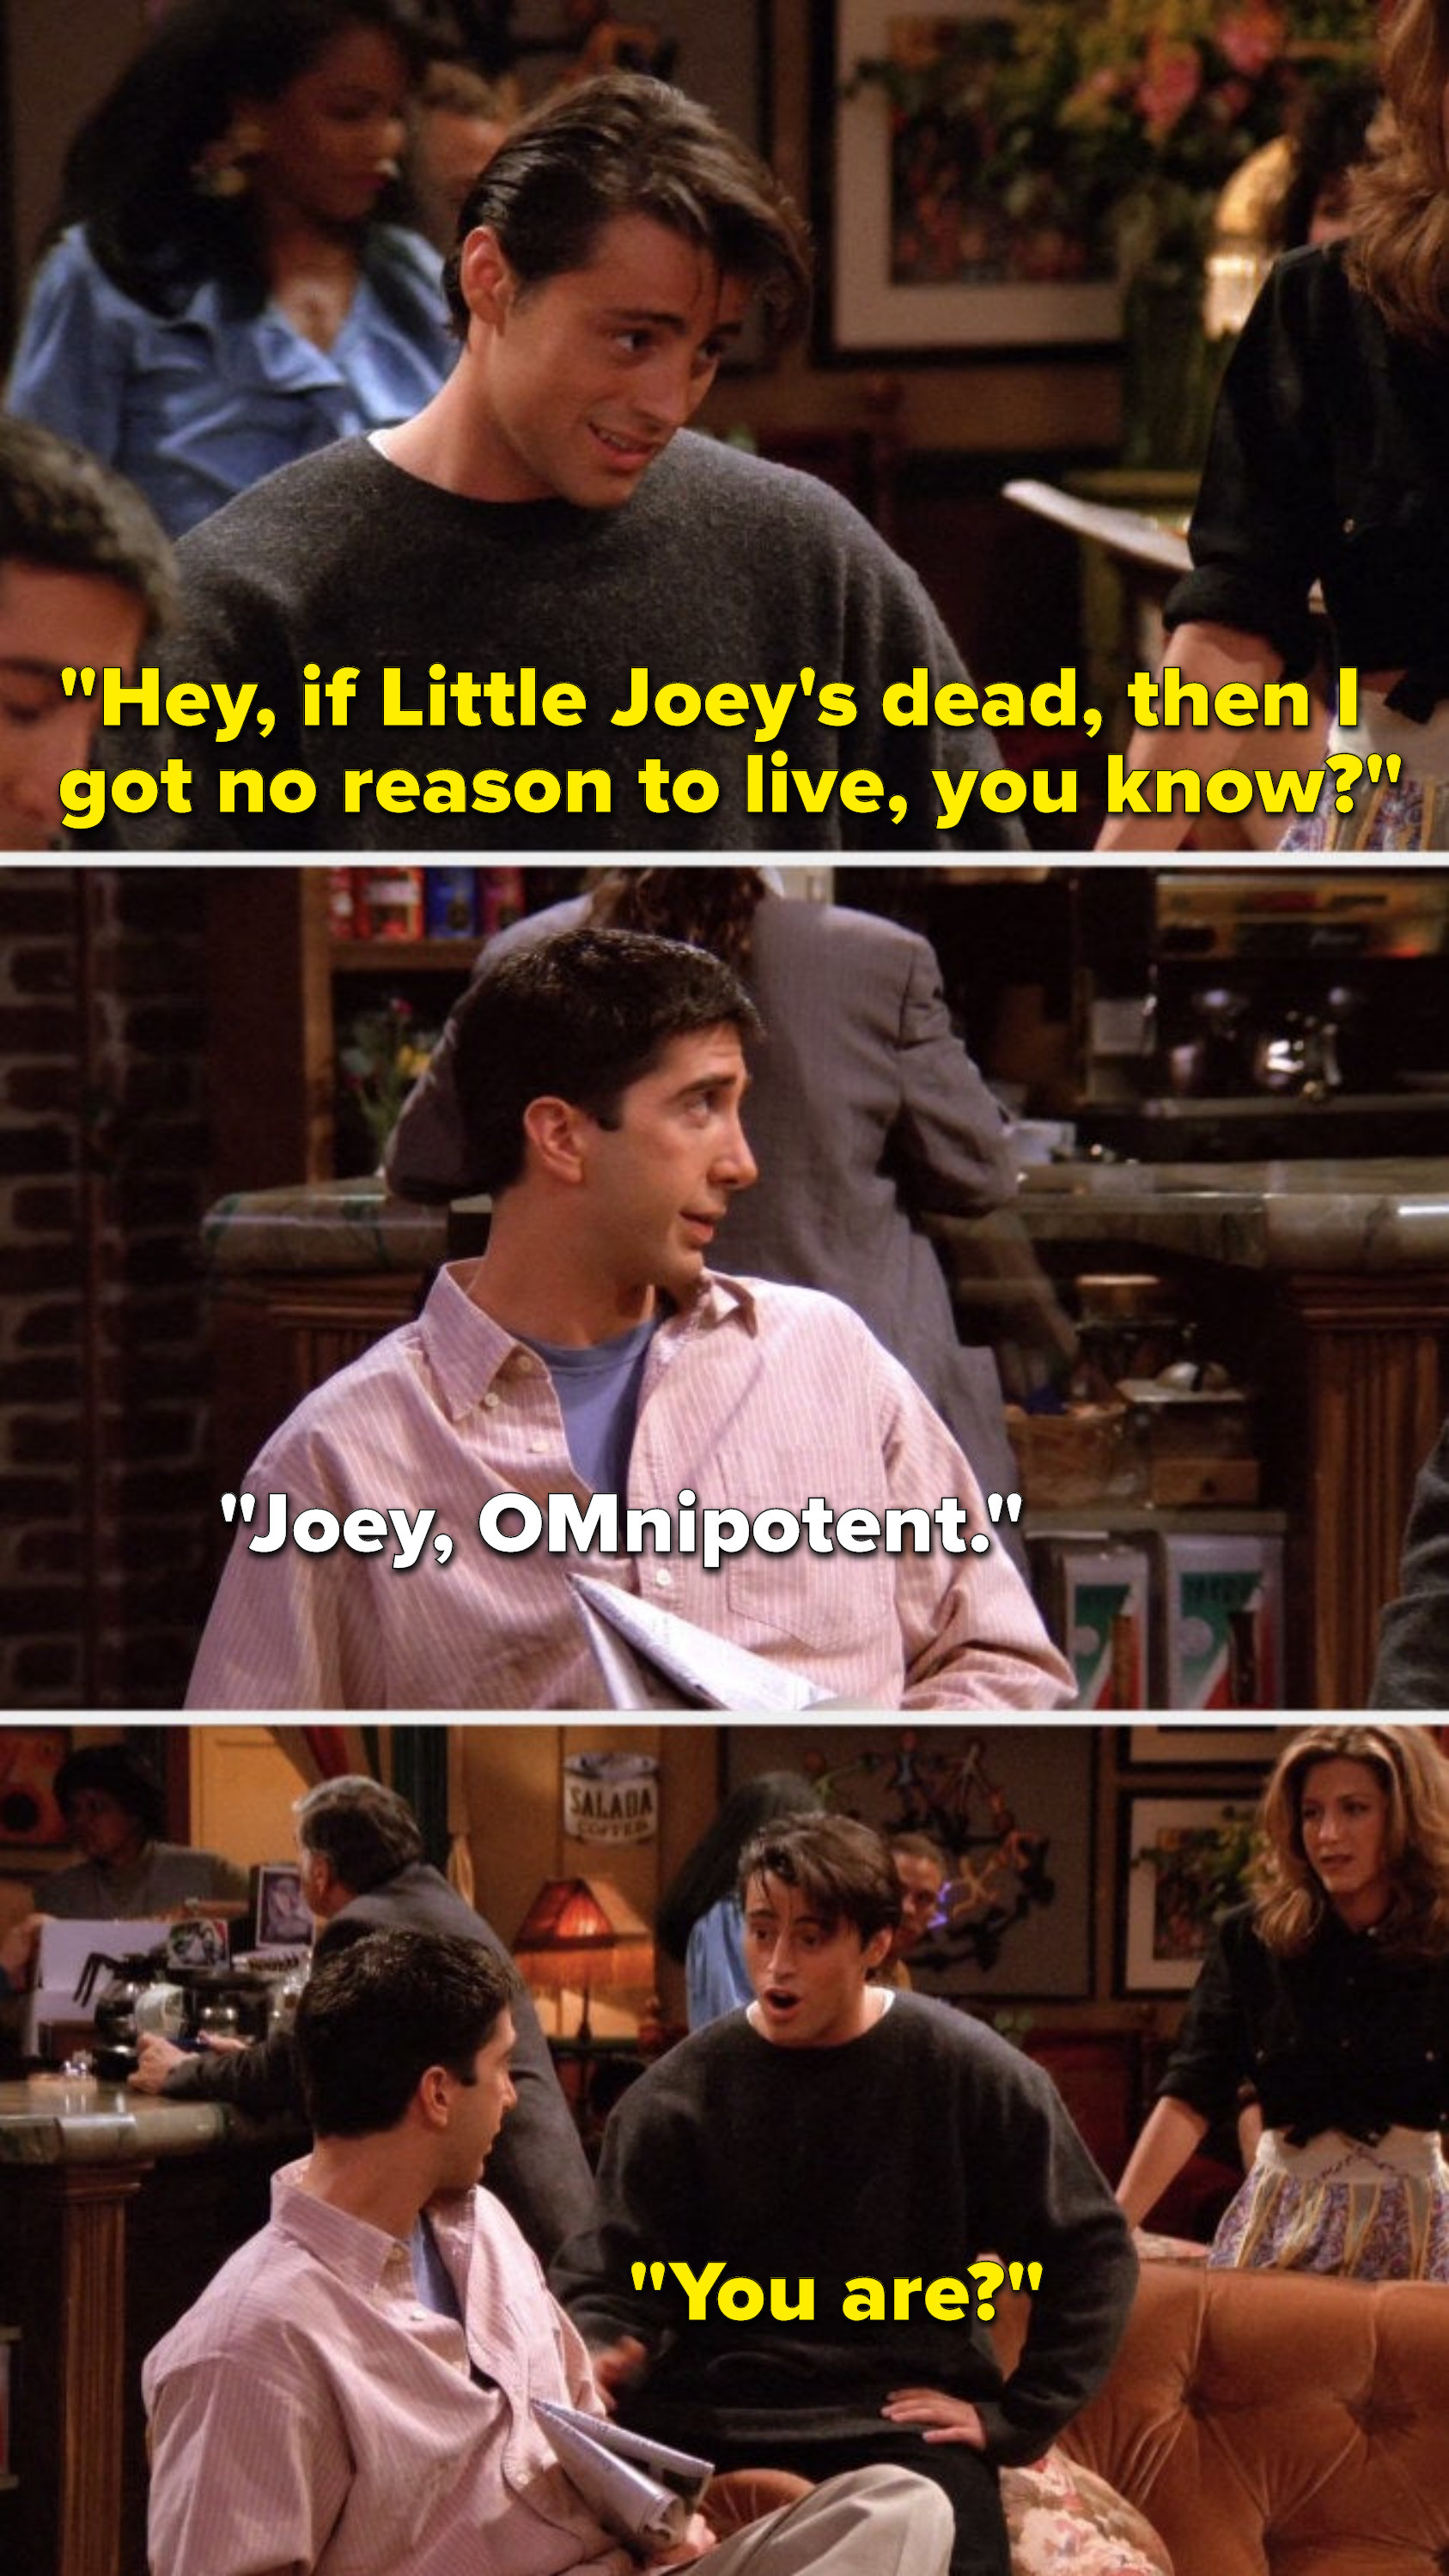 """Joey says, """"Hey, if Little Joey's dead, then I got no reason to live, you know,"""" Ross says, """"Joey, OMnipotent,"""" and Joey asks, """"You are"""""""